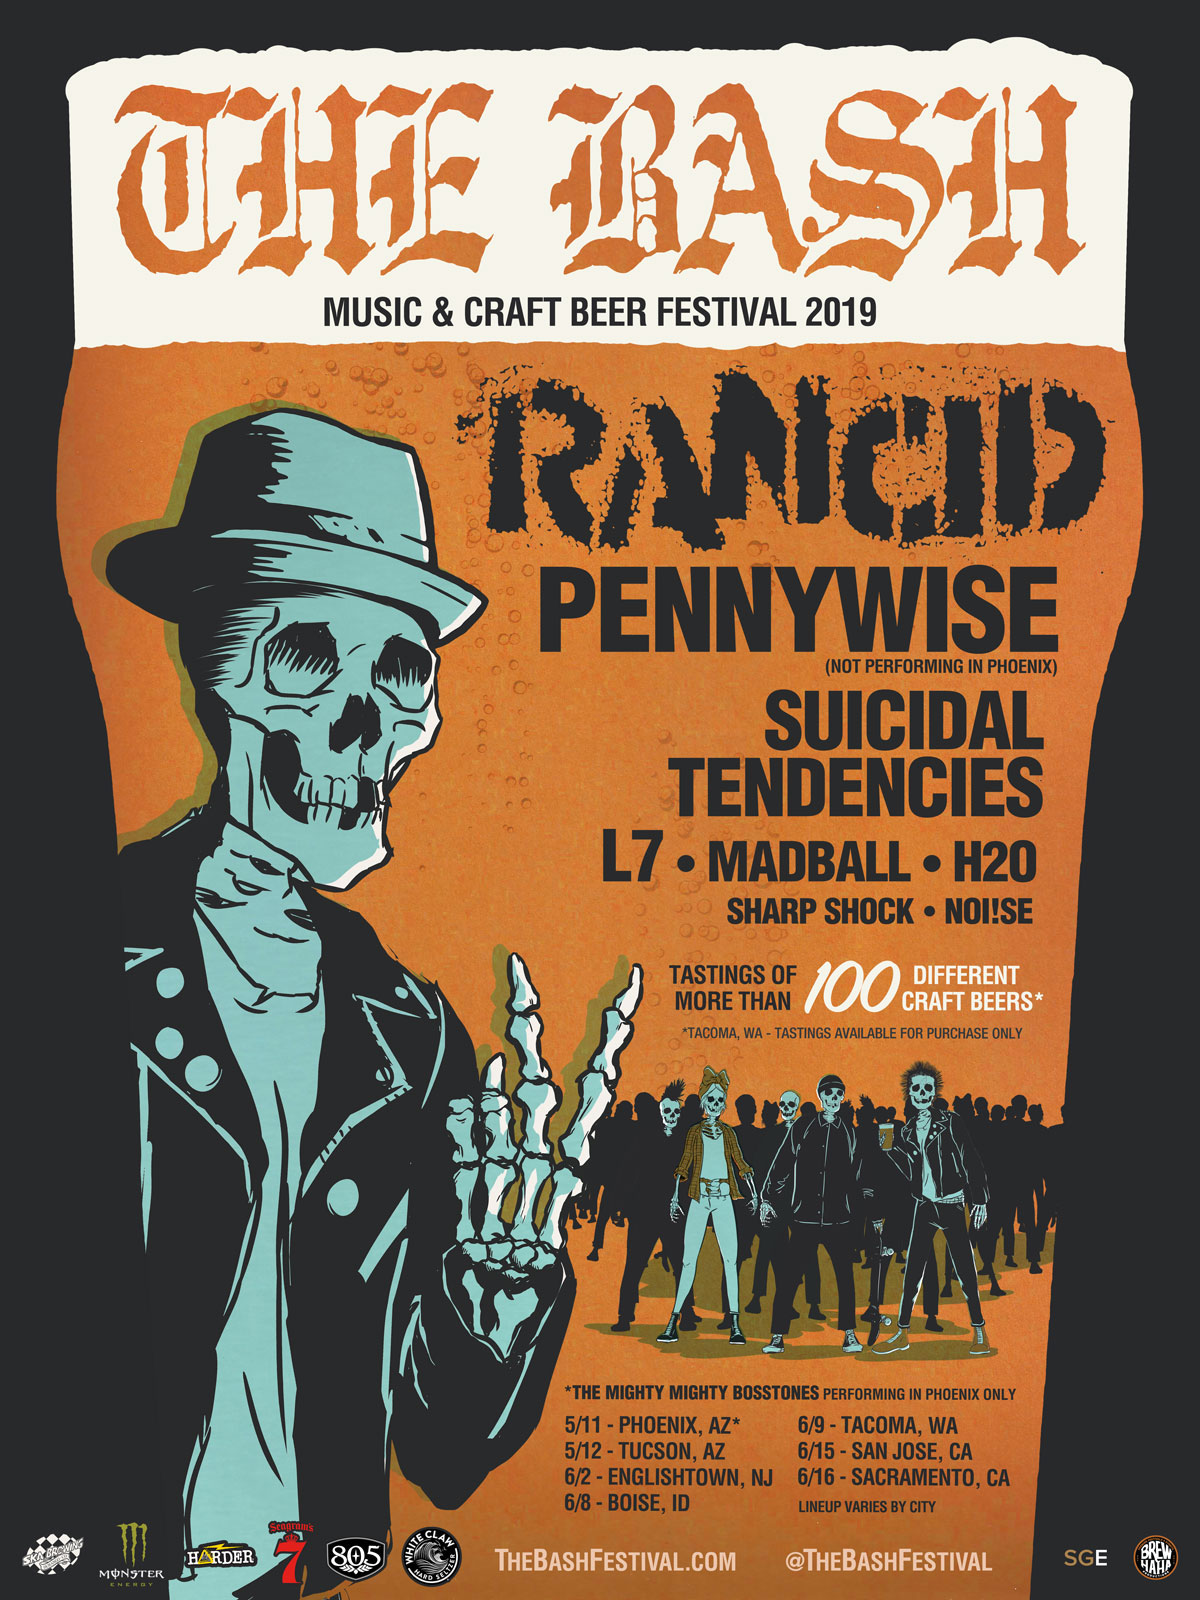 Rancid The Bash touring beer music festival poster